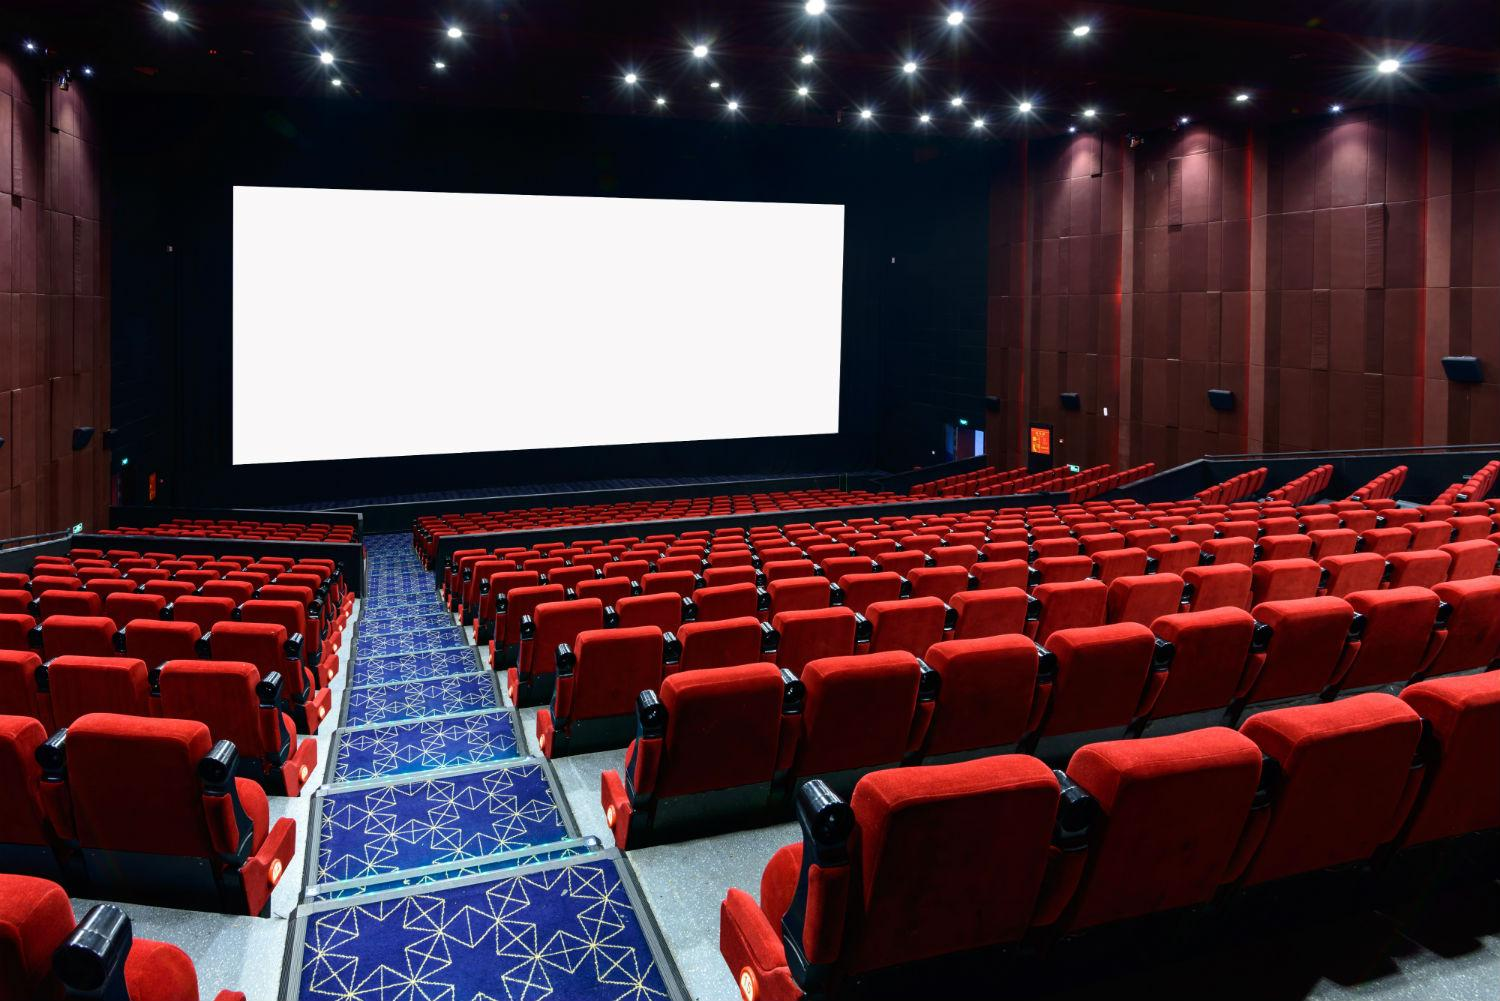 dts sound theater movie screen films lionsgate movies surround featuring coming fall